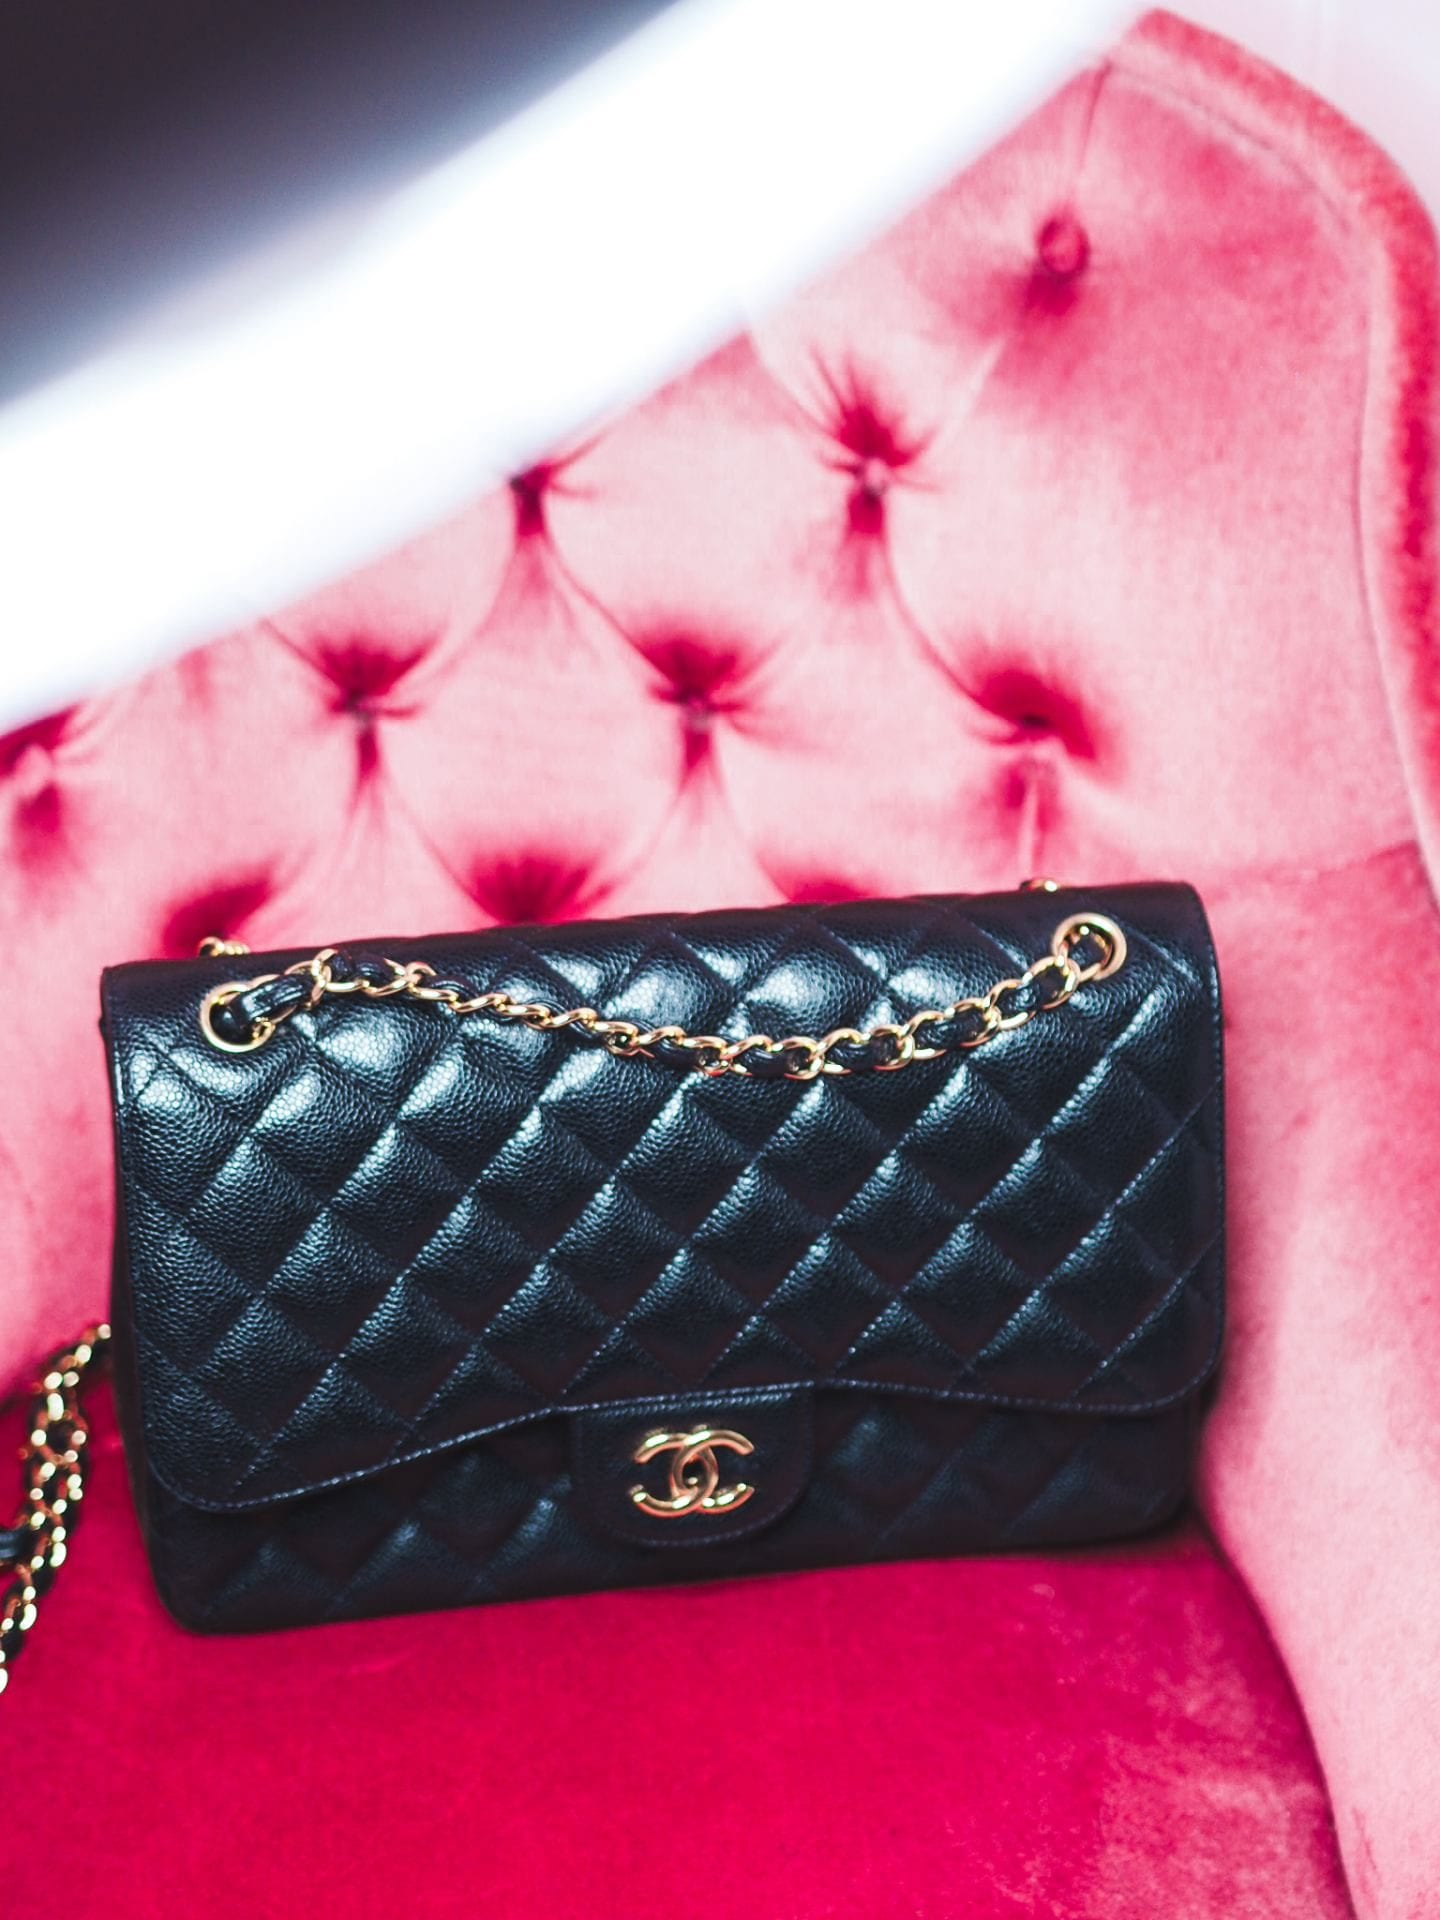 chanel jumbo handbag black caviar leather review